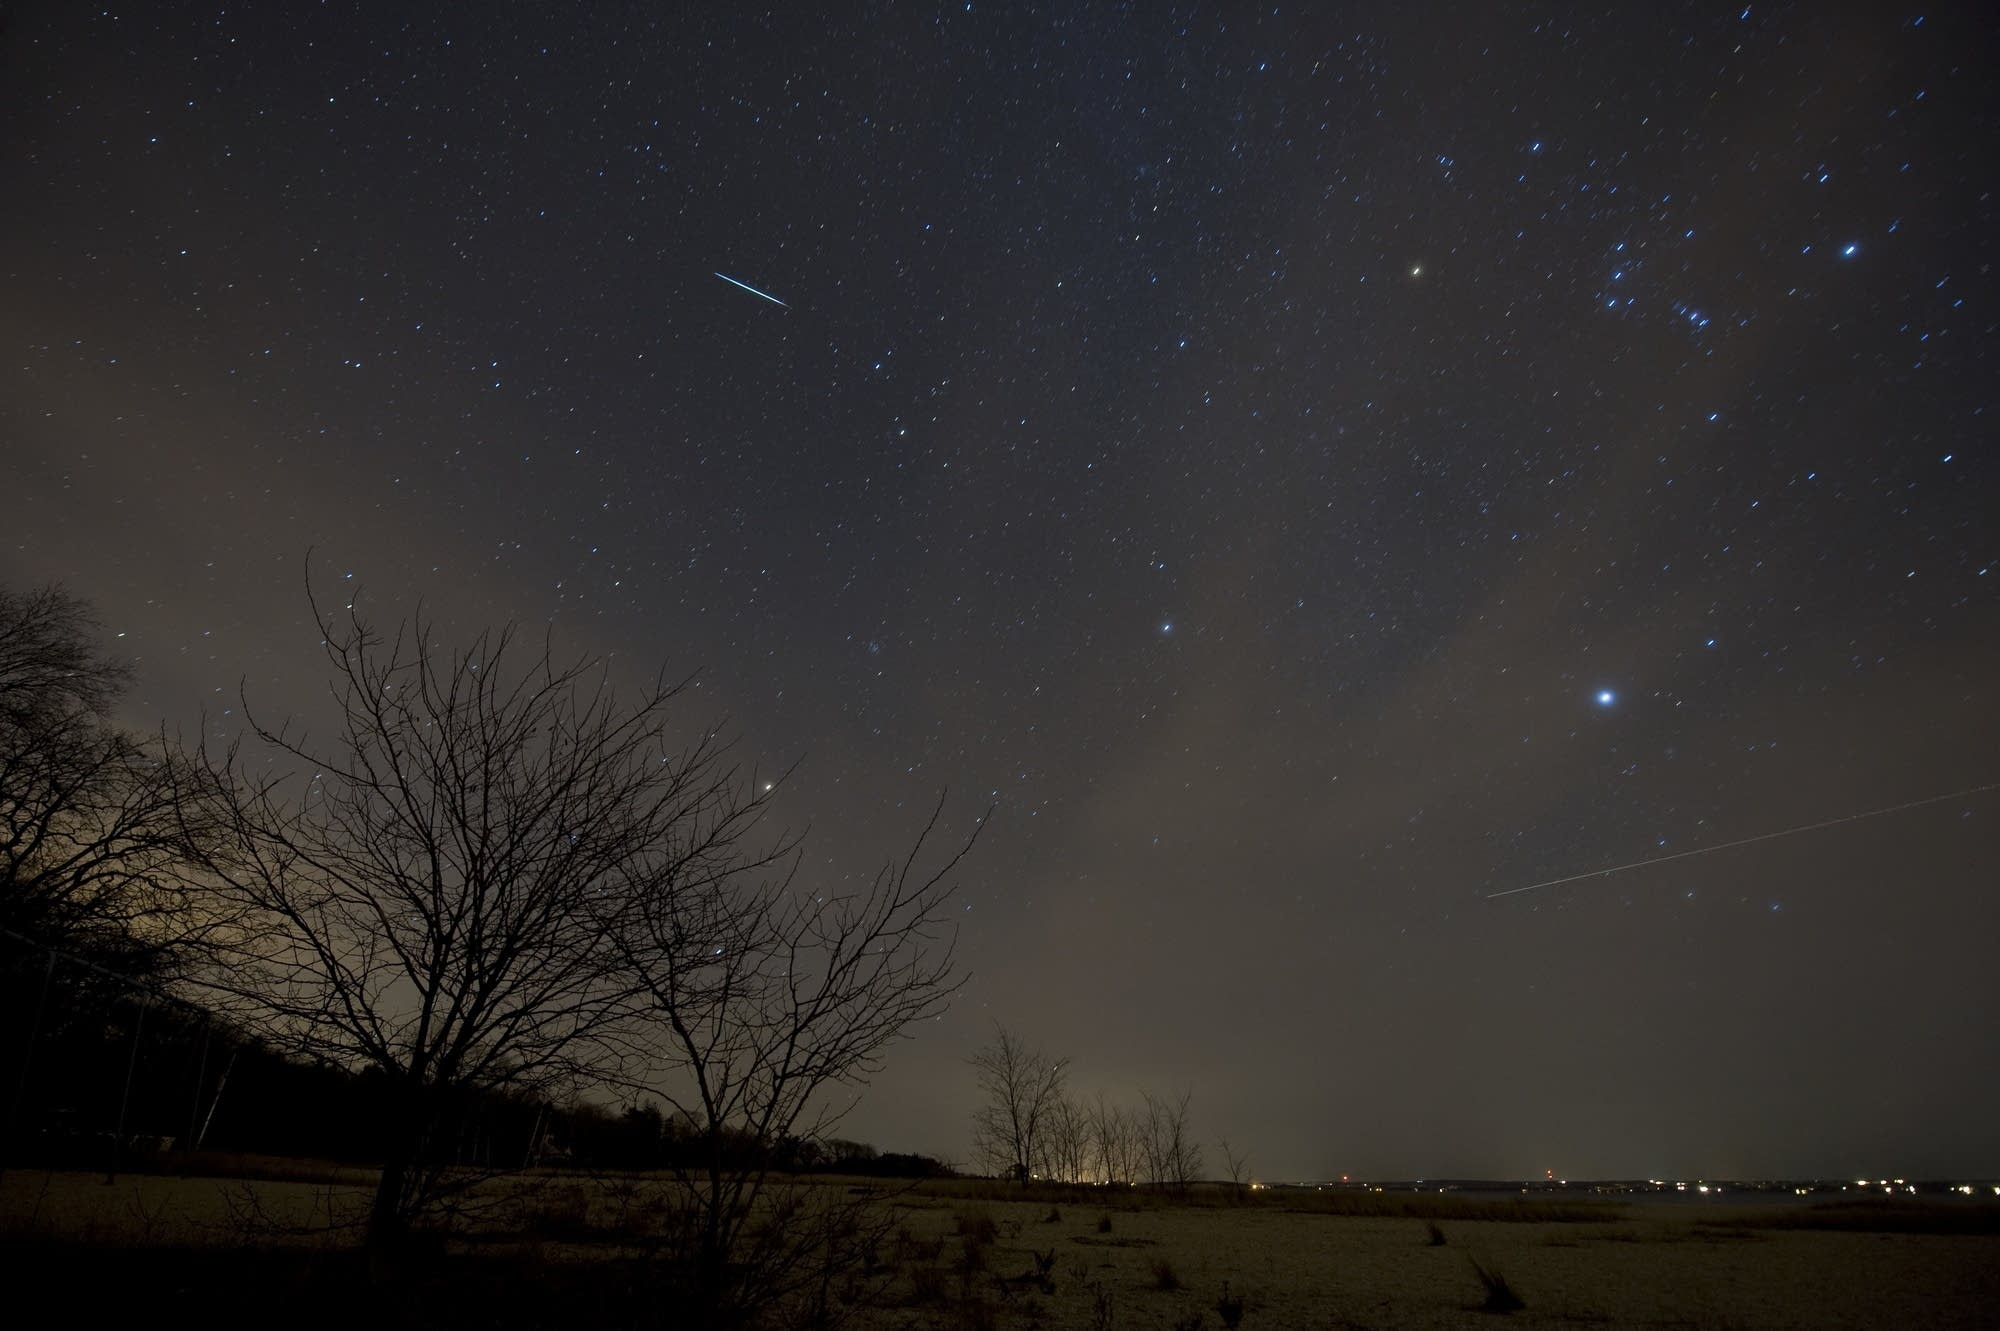 A meteor from the Geminids meteor shower